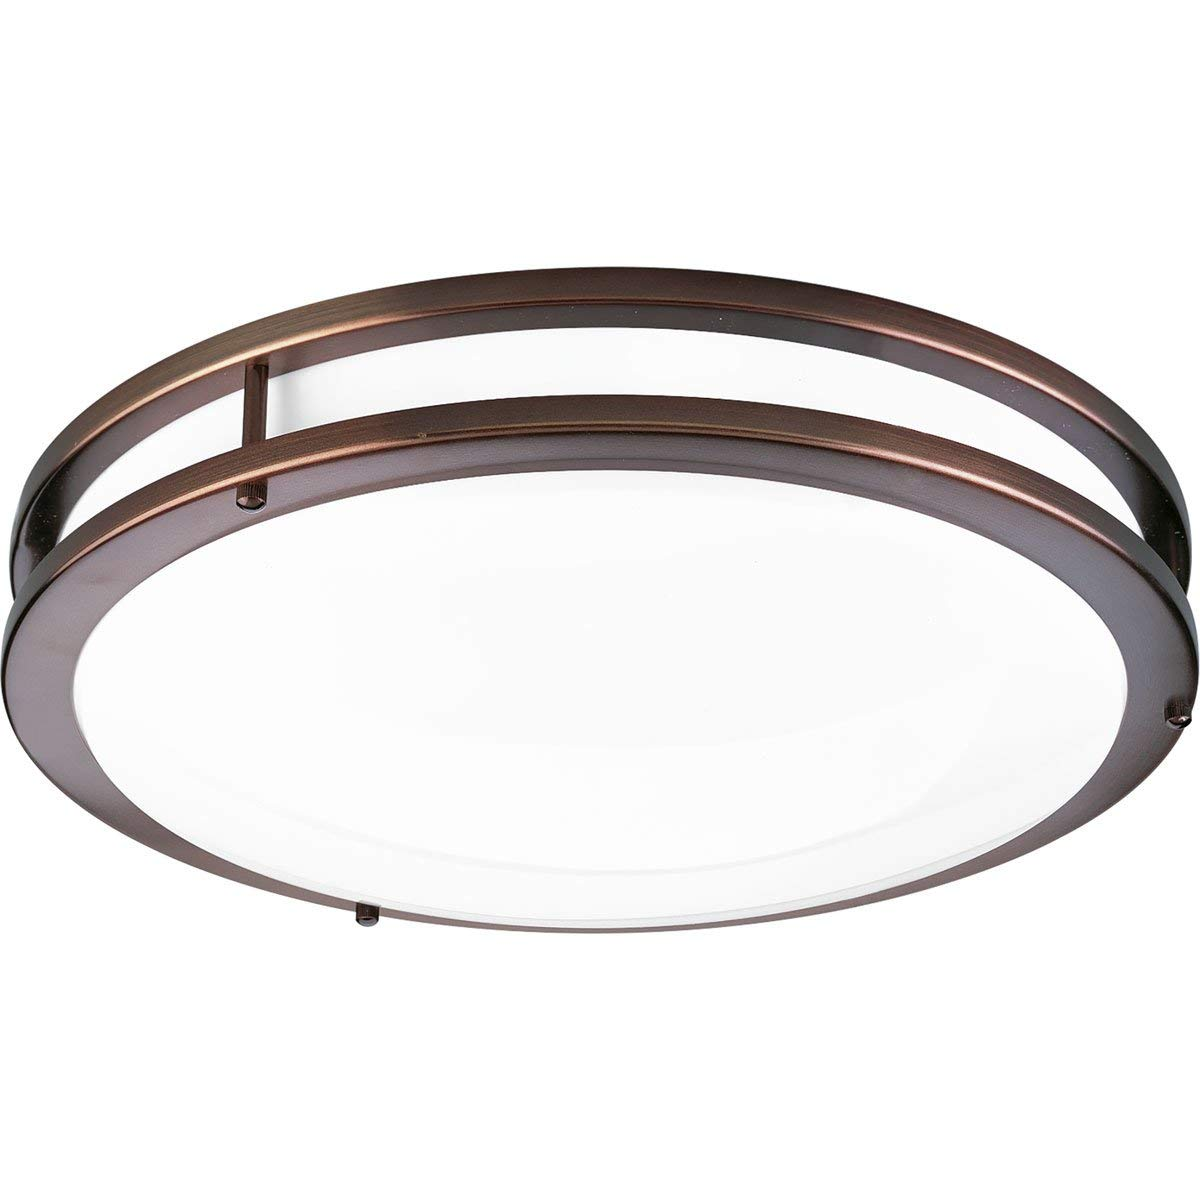 Progress Lighting P7253-17430K9 One-Light Surface Mount with Clean Modern Lines, Urban Bronze